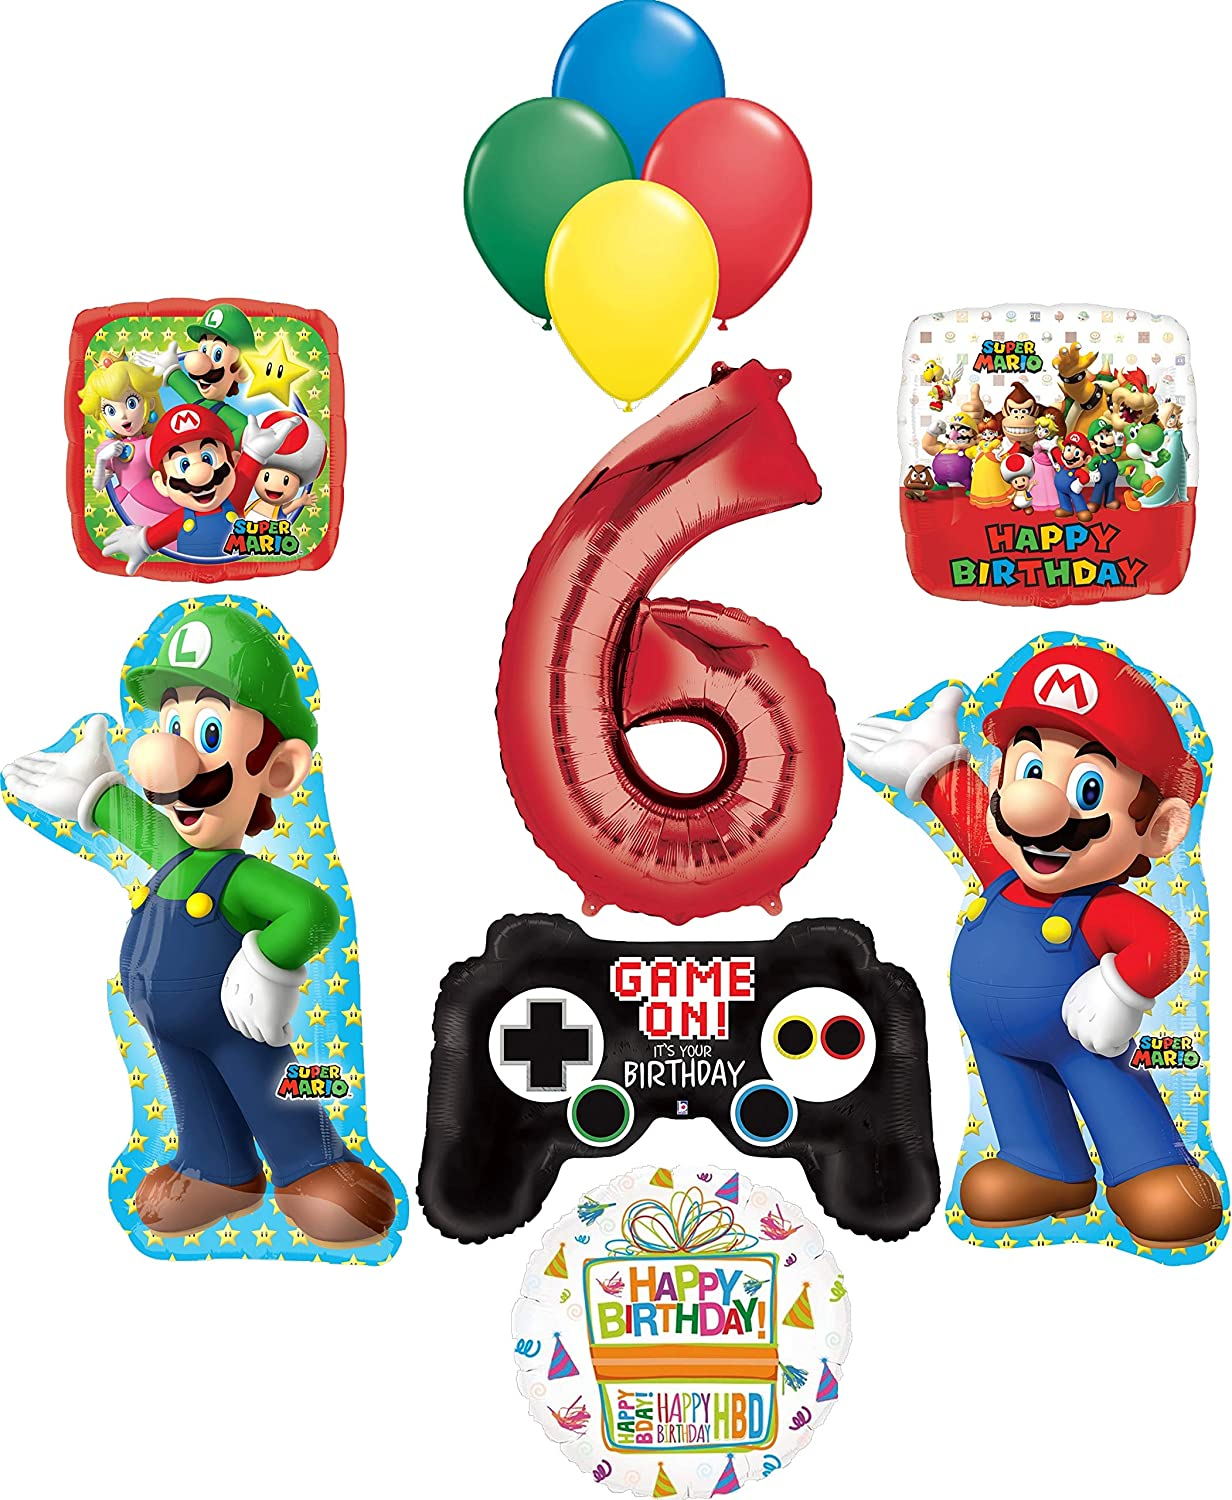 Amazon Com Super Mario Brothers Party Supplies 6th Birthday Balloon Bouquet Decorations Toys Games